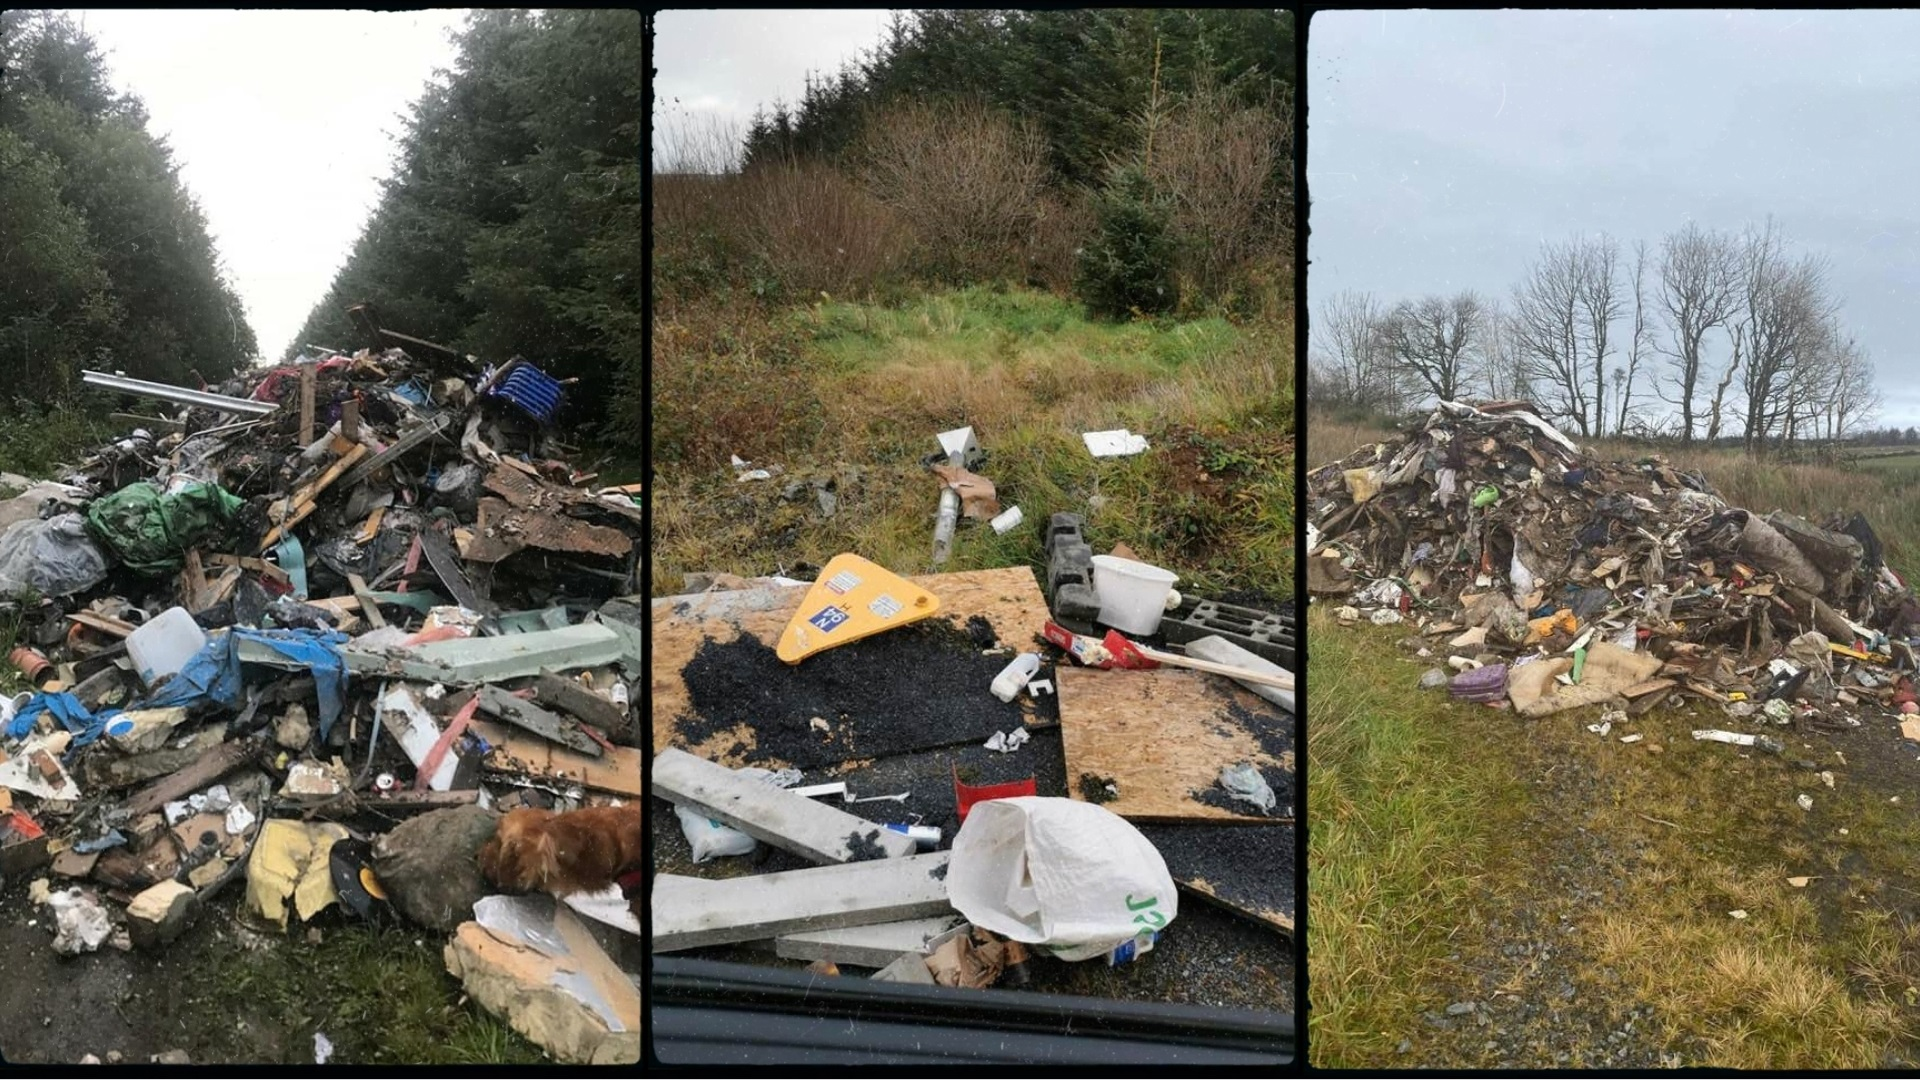 Illegal dumping - Haughey continues to press authorities on illegal dumping - Newtownhamilton news